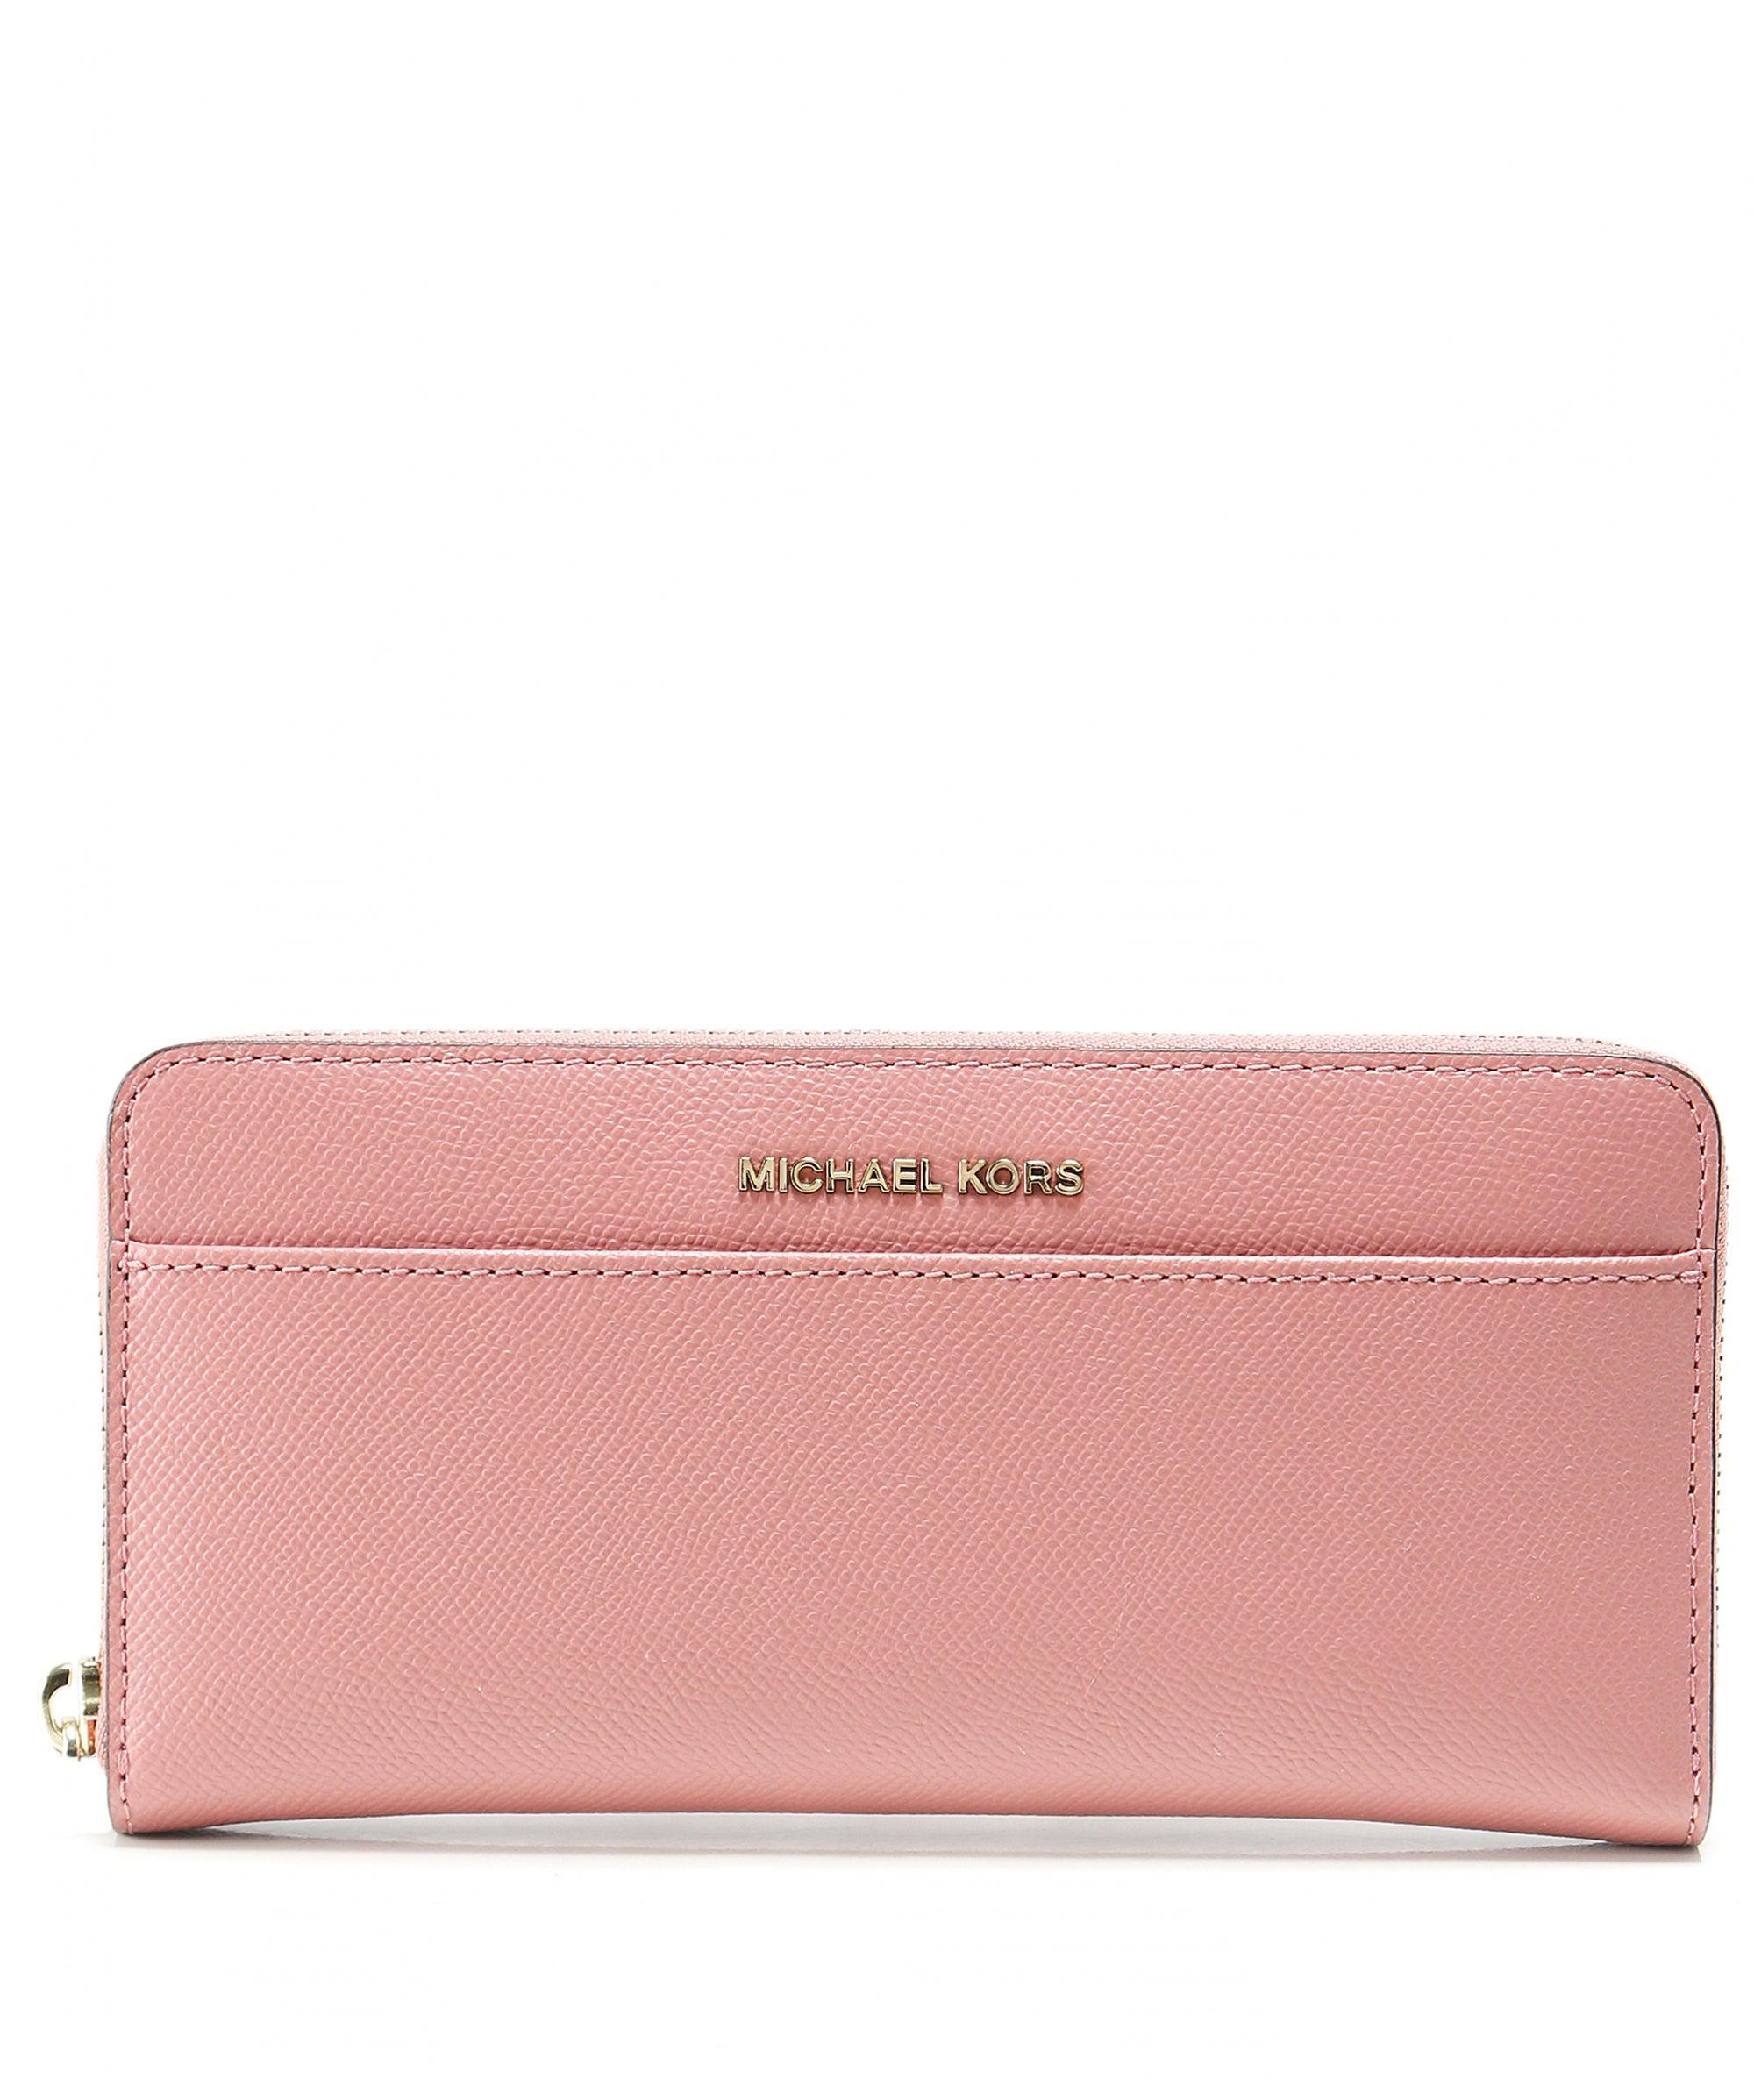 9401a07c4480 Lyst - MICHAEL Michael Kors Saffiano Leather Continental Purse in Pink